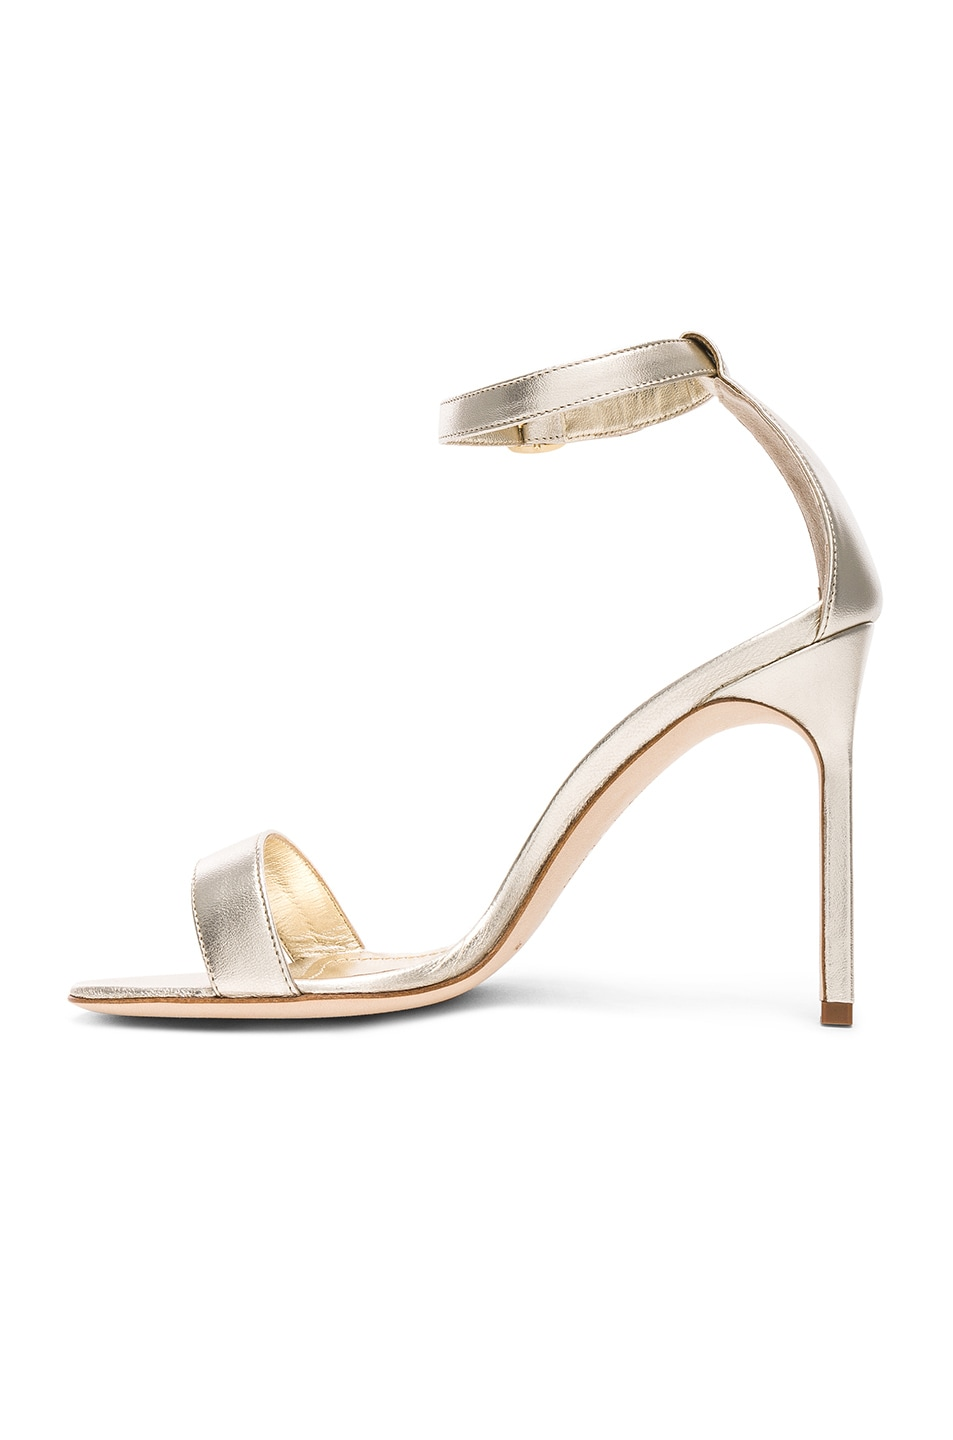 Image 5 of Manolo Blahnik Leather Chaos 105 Heels in Light Gold Leather